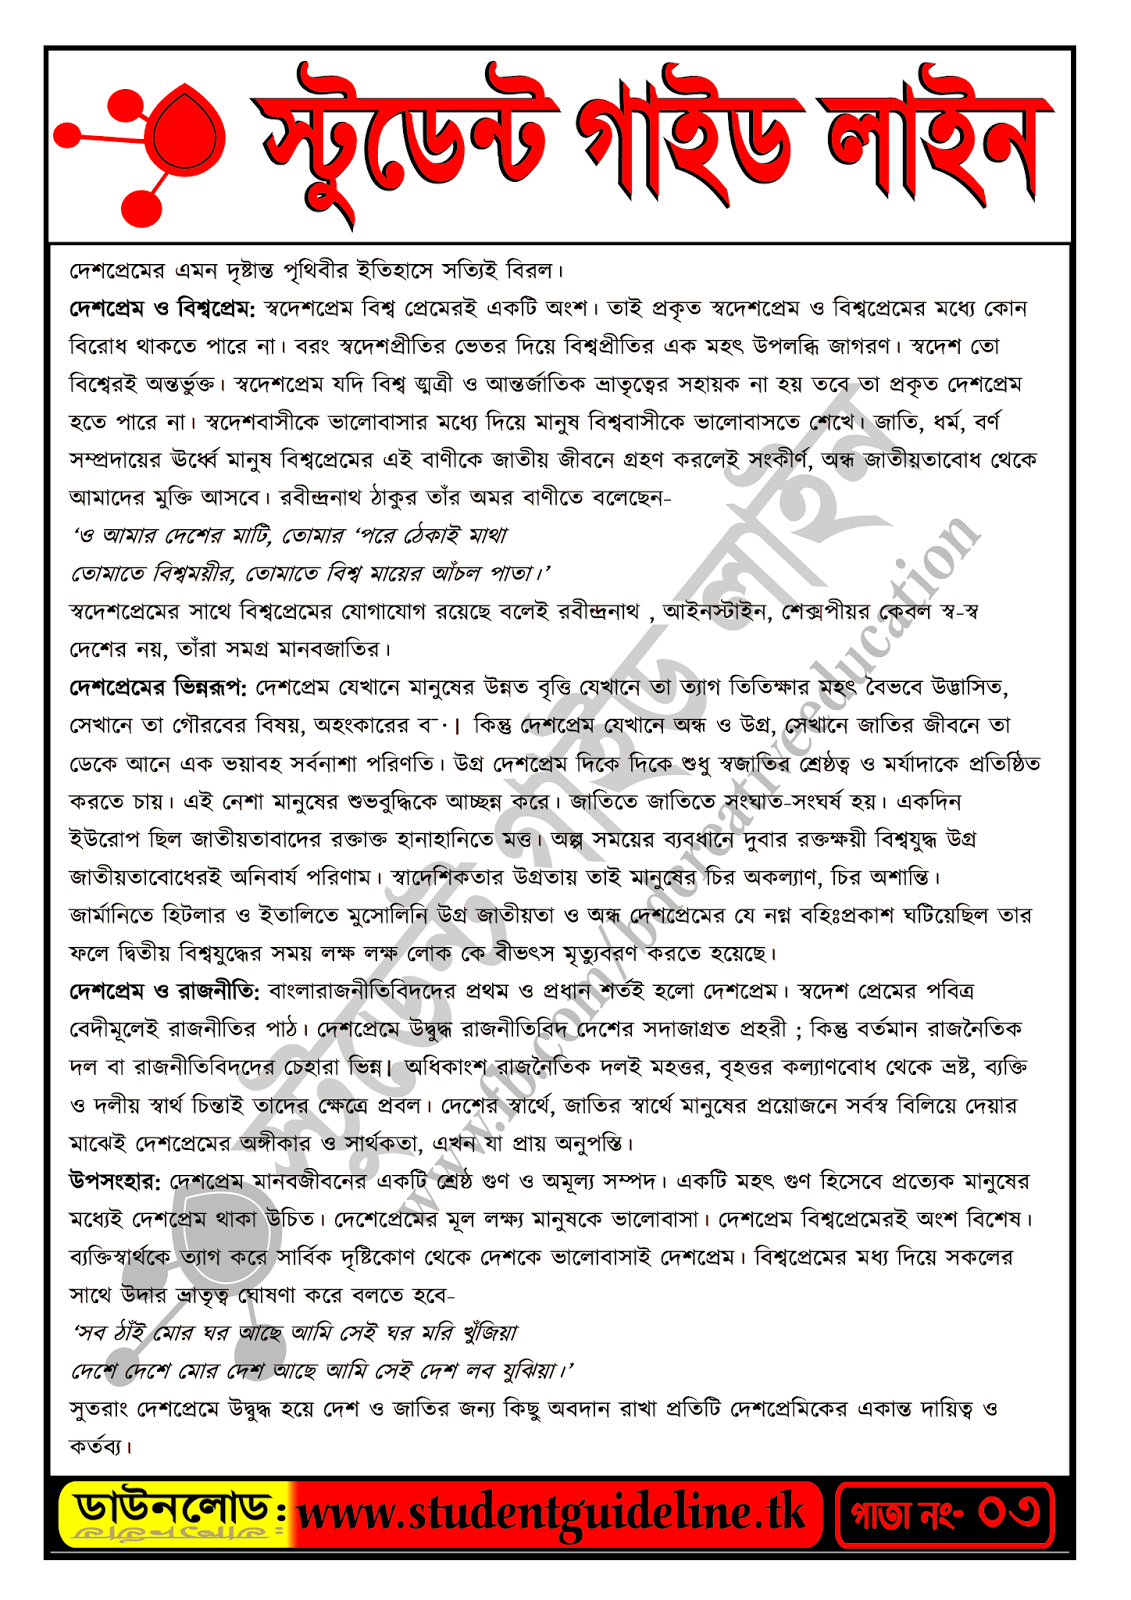 hsc ssc jsc bangla essay or composition patriotism 2474250924802476247225092471 2480245824722494